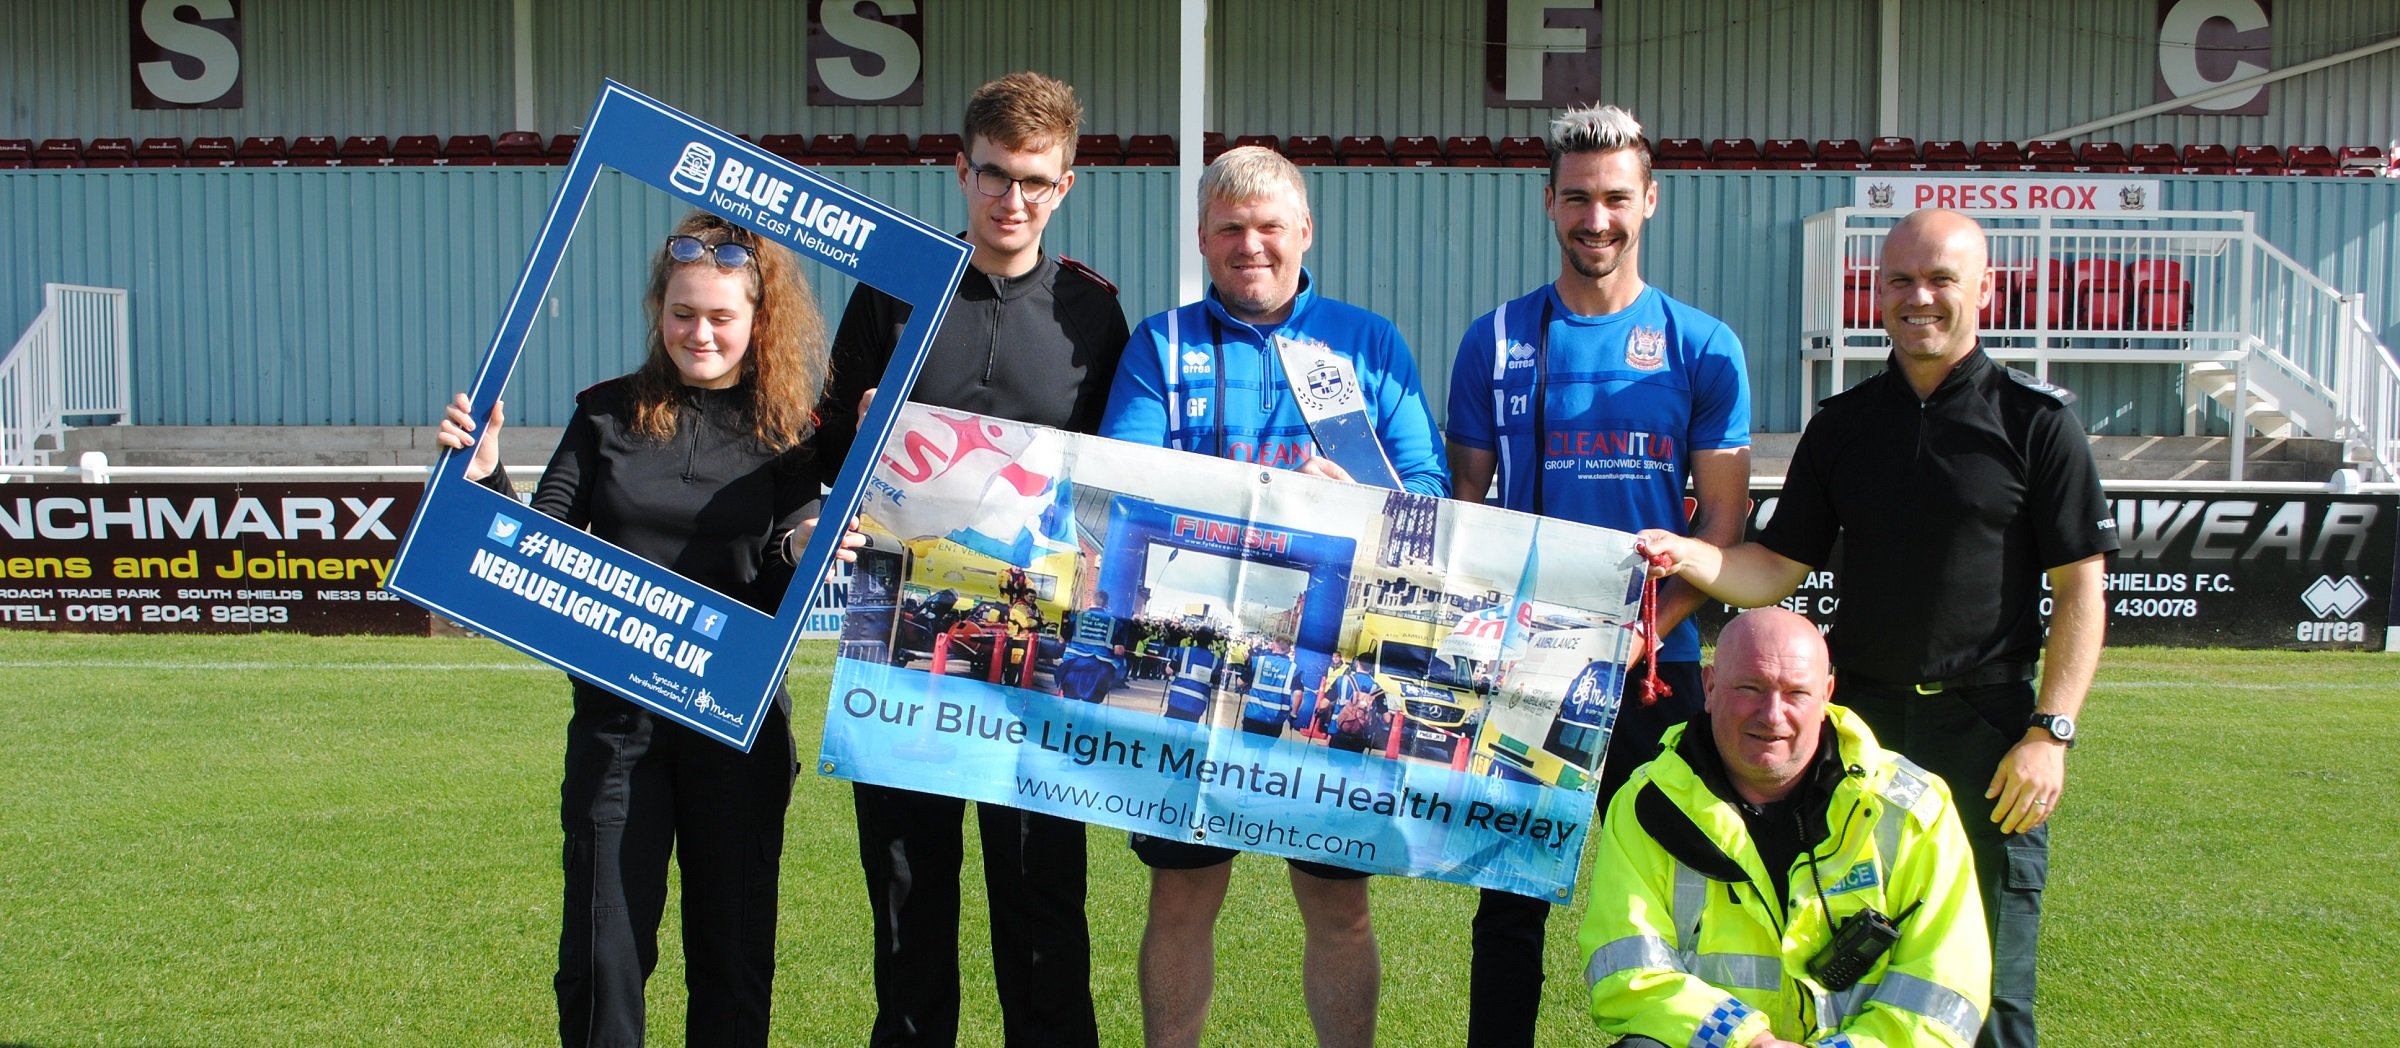 Club shows support for Our Blue Light campaign